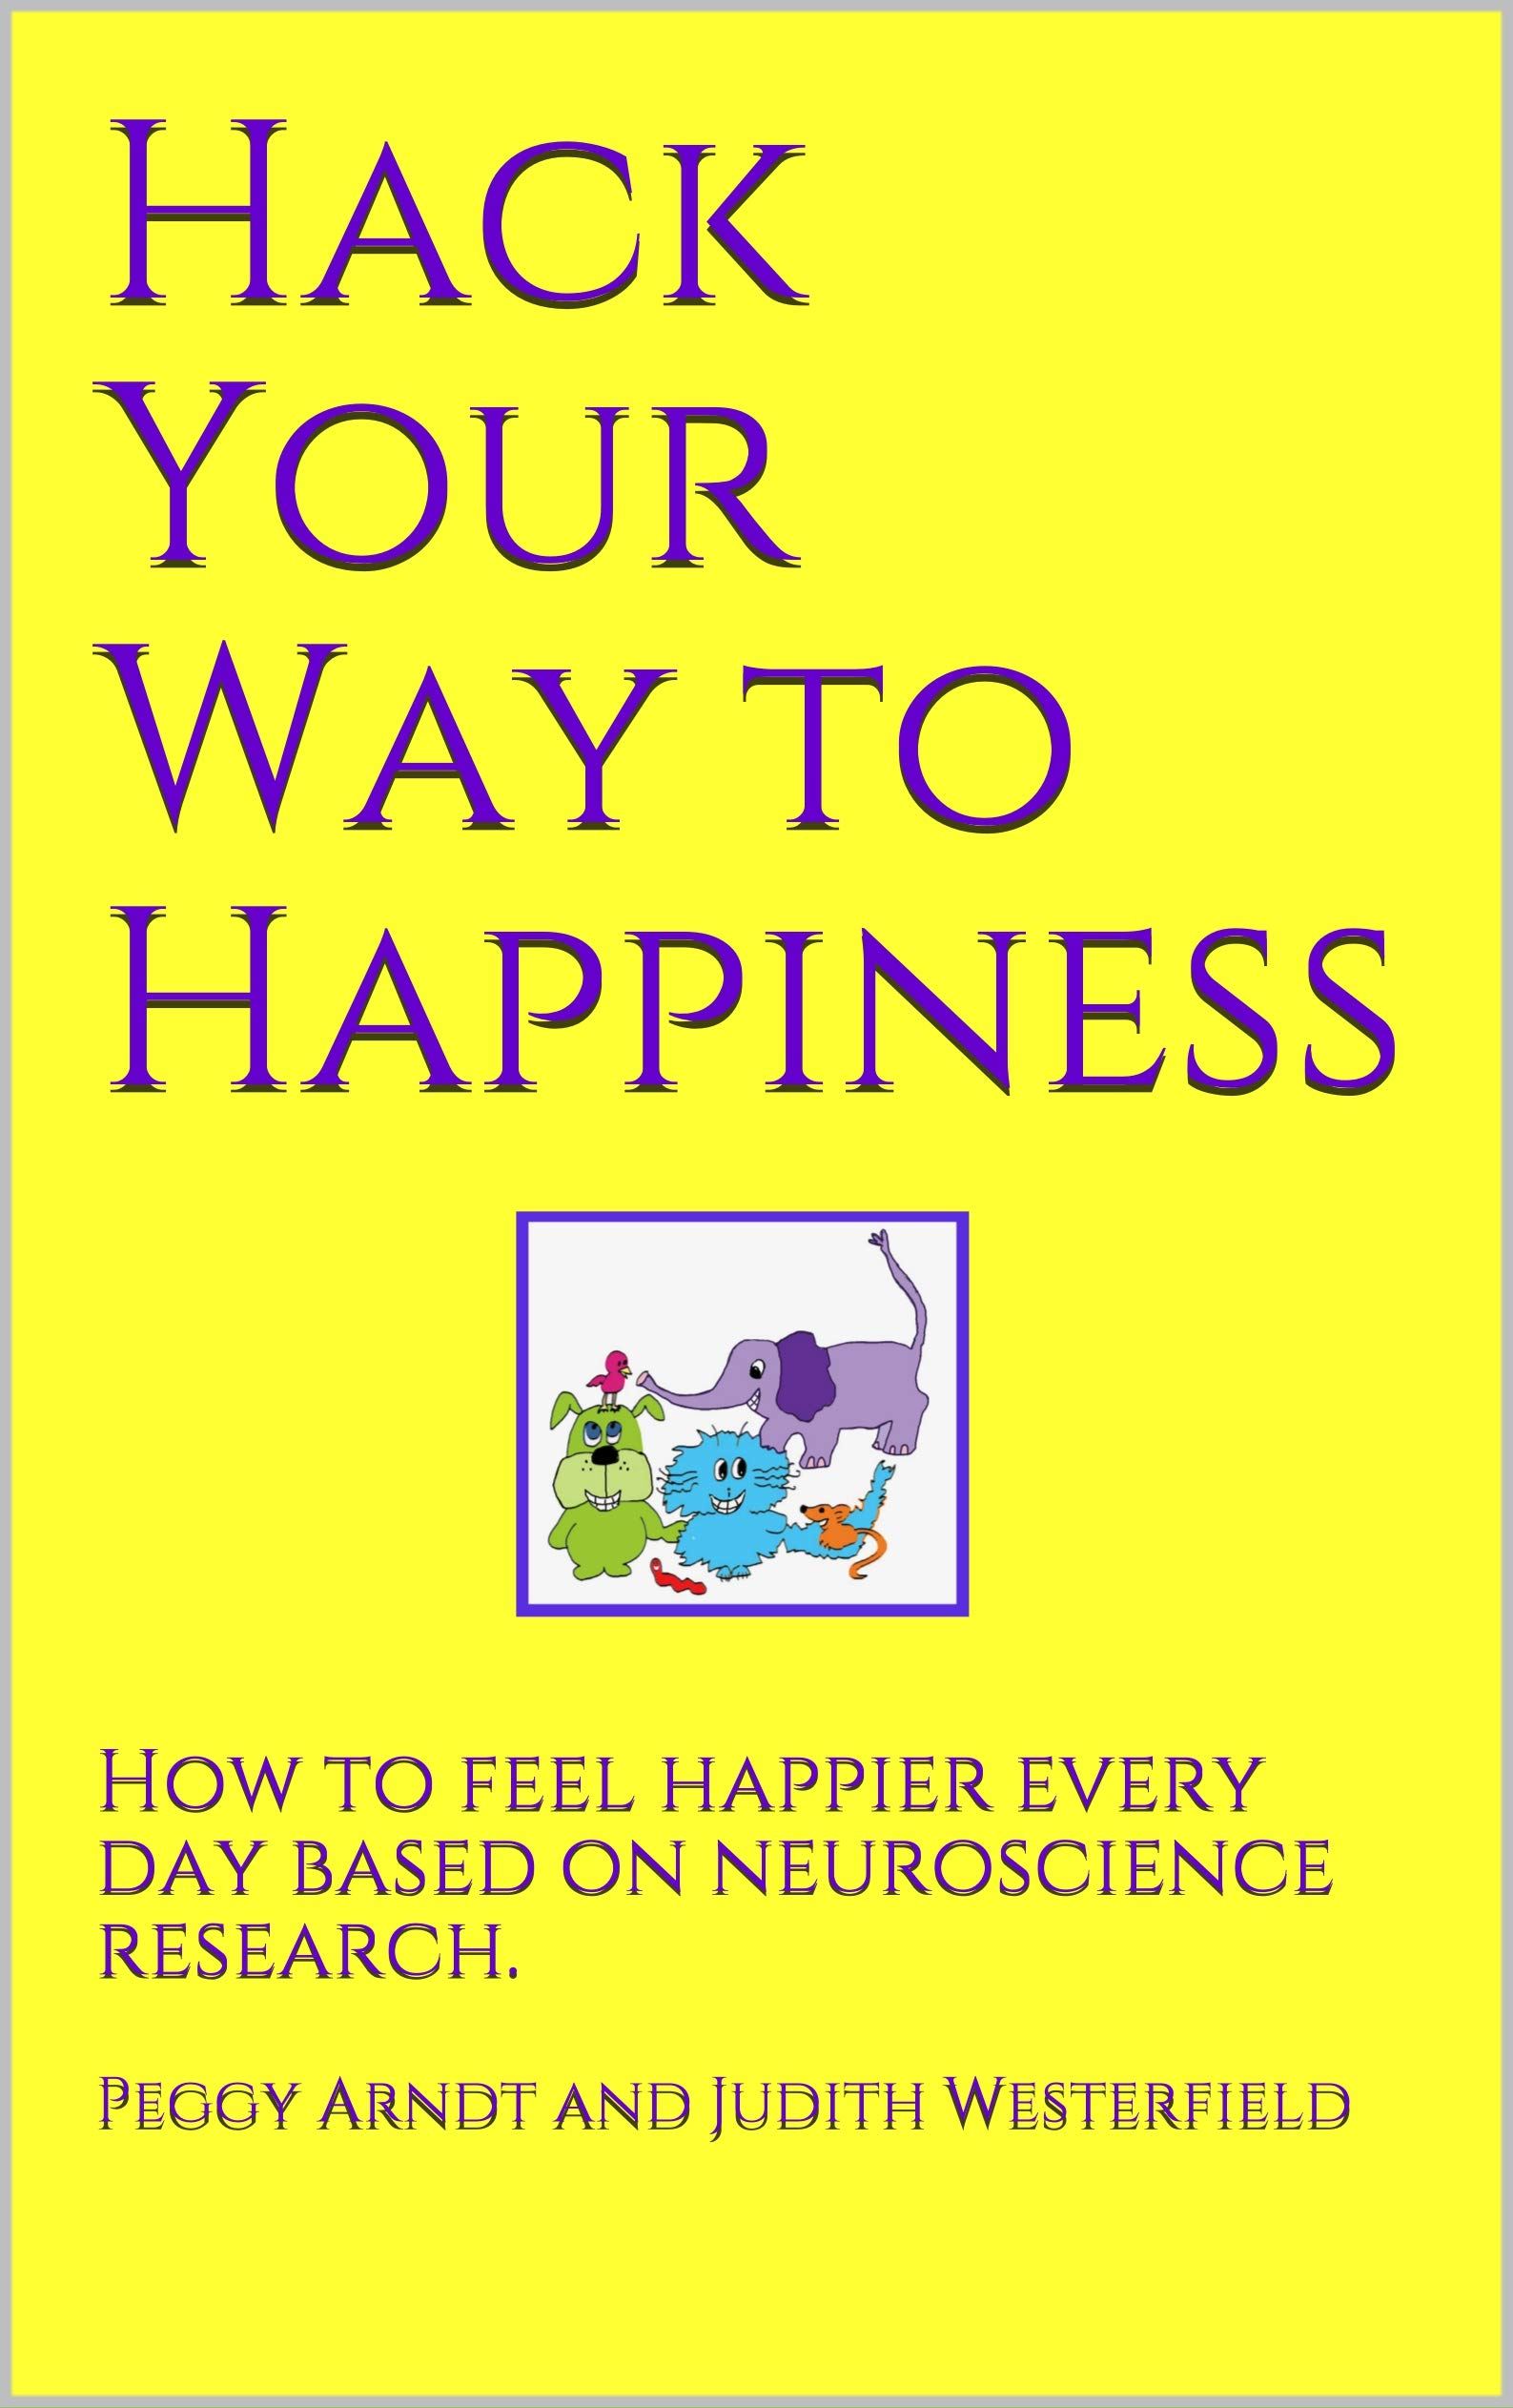 Hack Your Way to Happiness: How to feel happier every day based on neuroscience research.